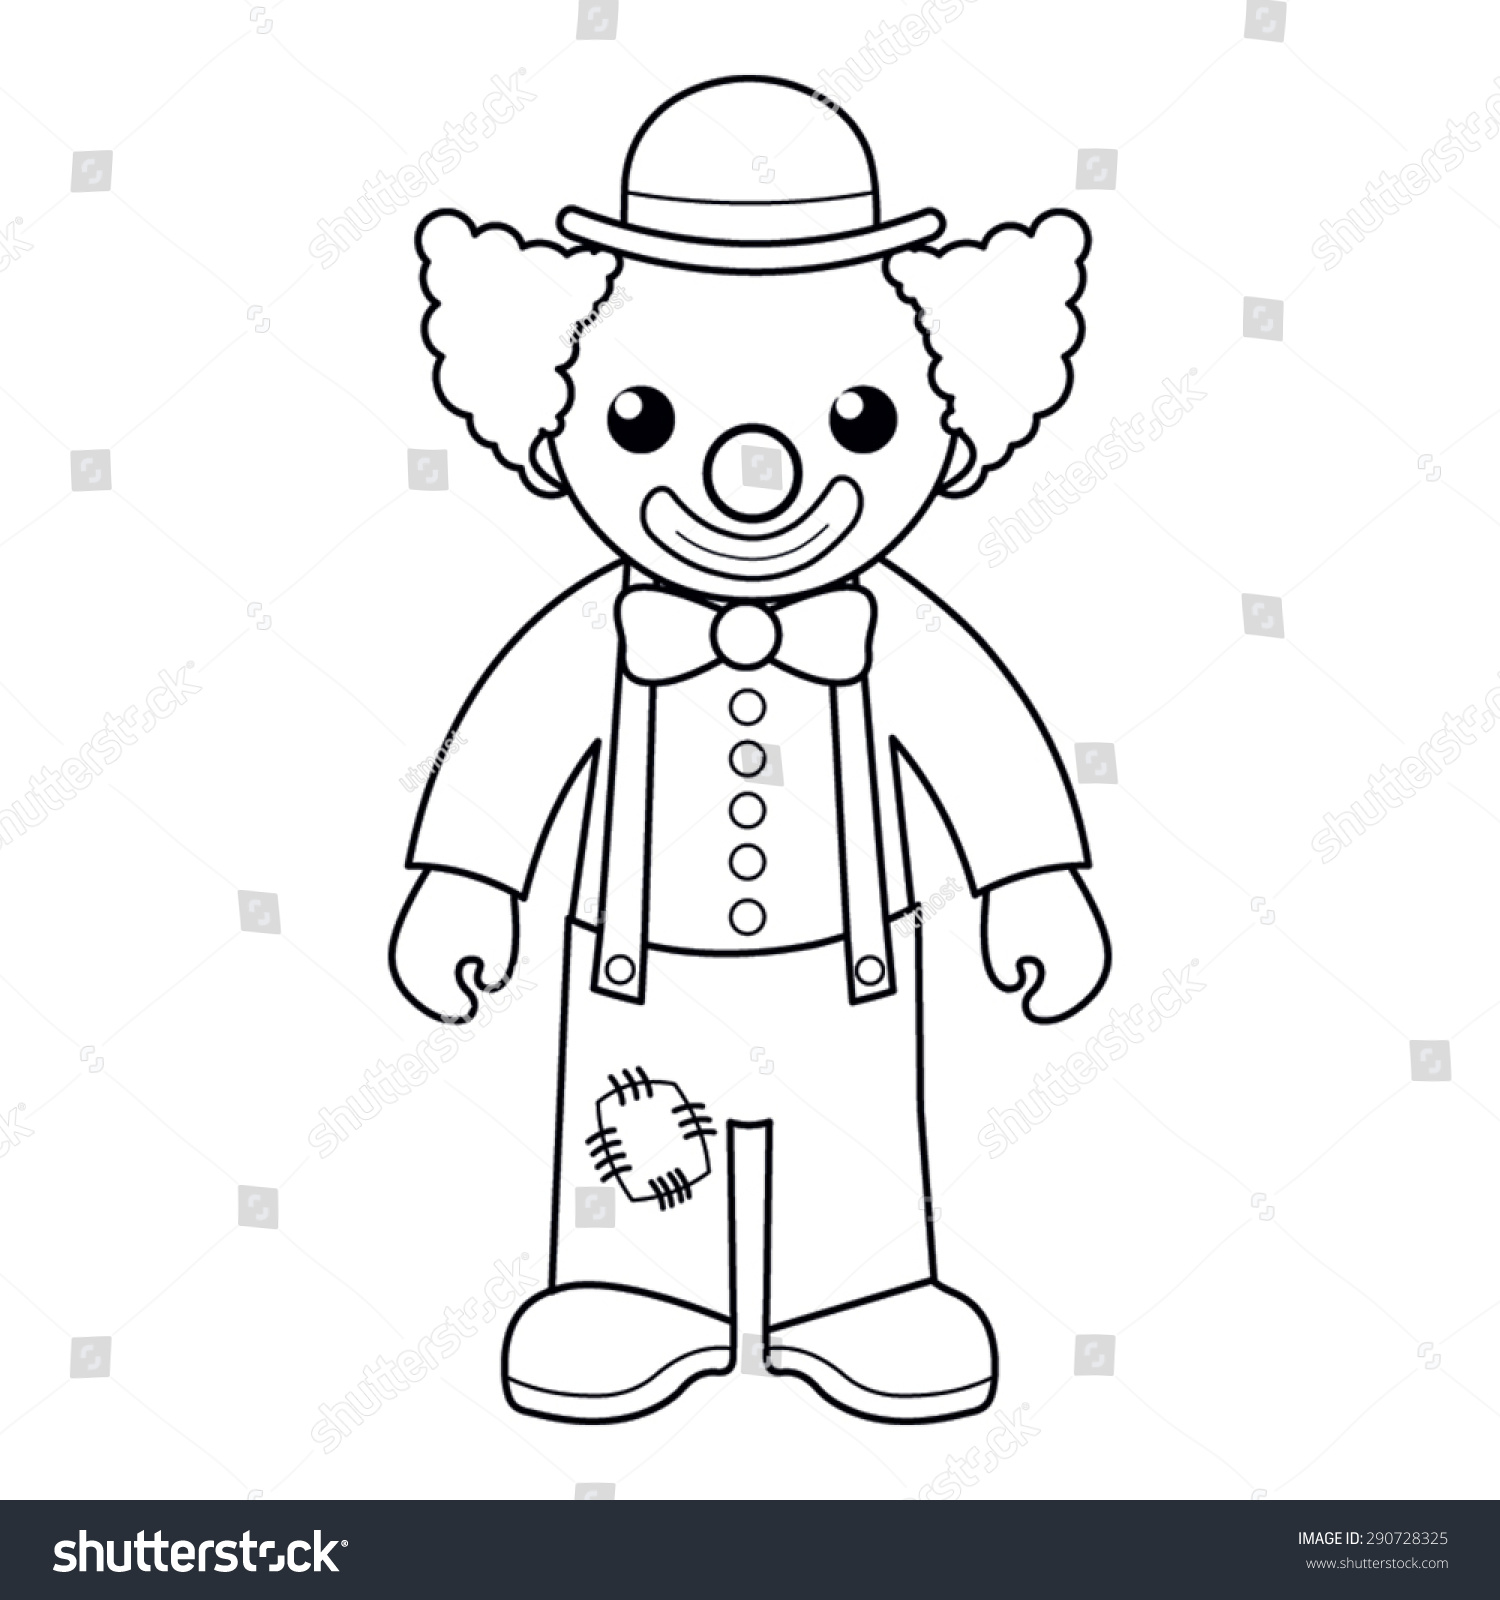 Coloring Page Vector Illustration Black White Stock Photo (Photo ...